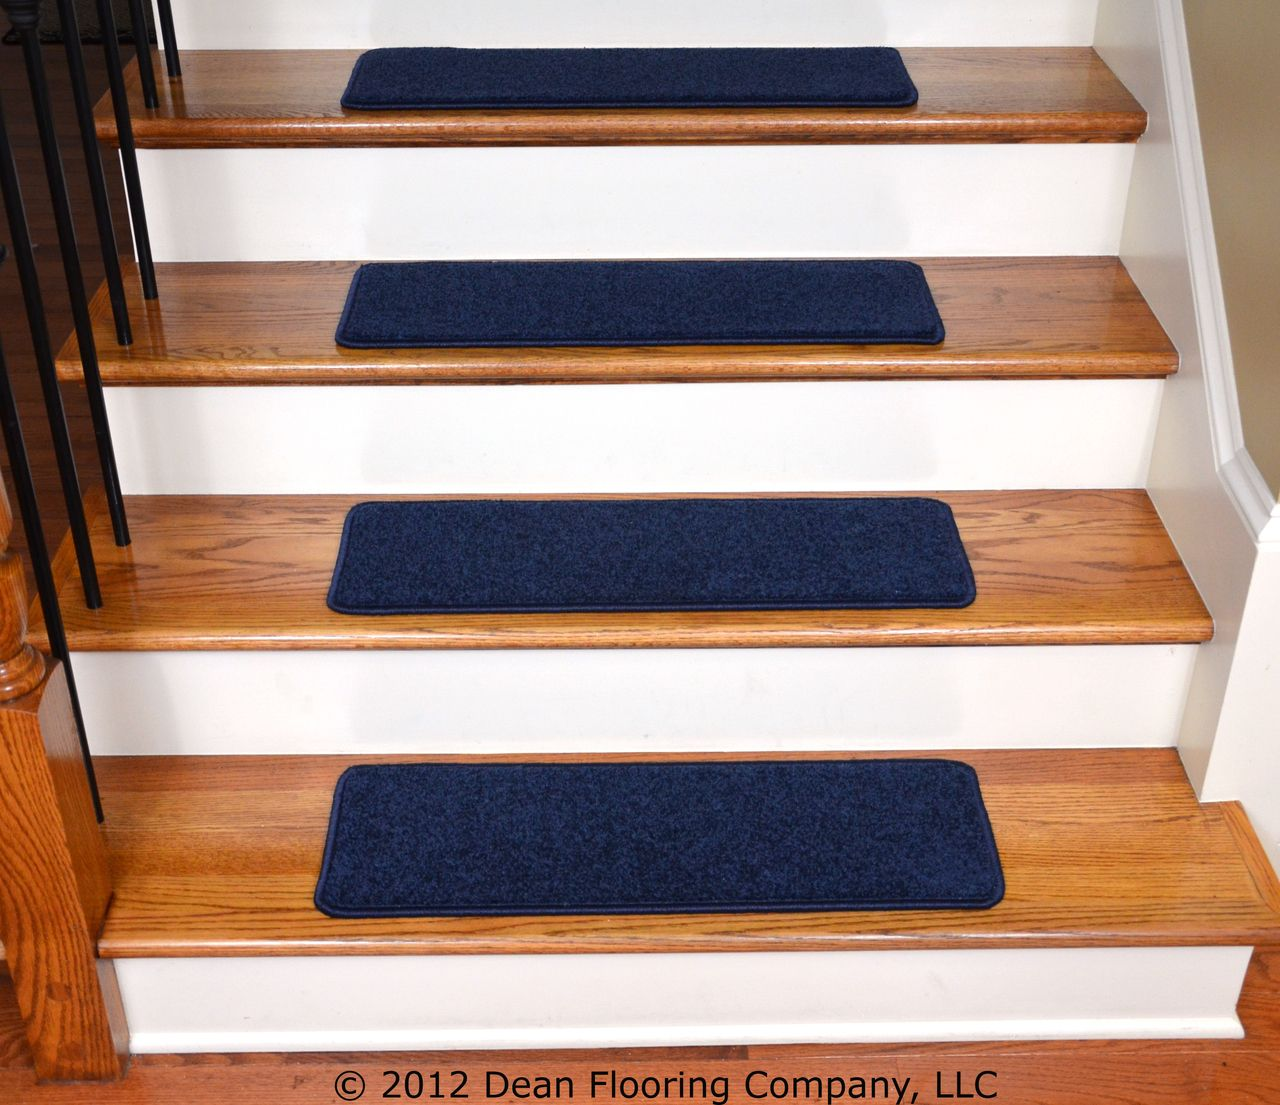 Best Dean Non Slip Tape Free Pet Friendly Stair Gripper Diy Carpet Stair Treads Rugs 27 X 9 15 400 x 300